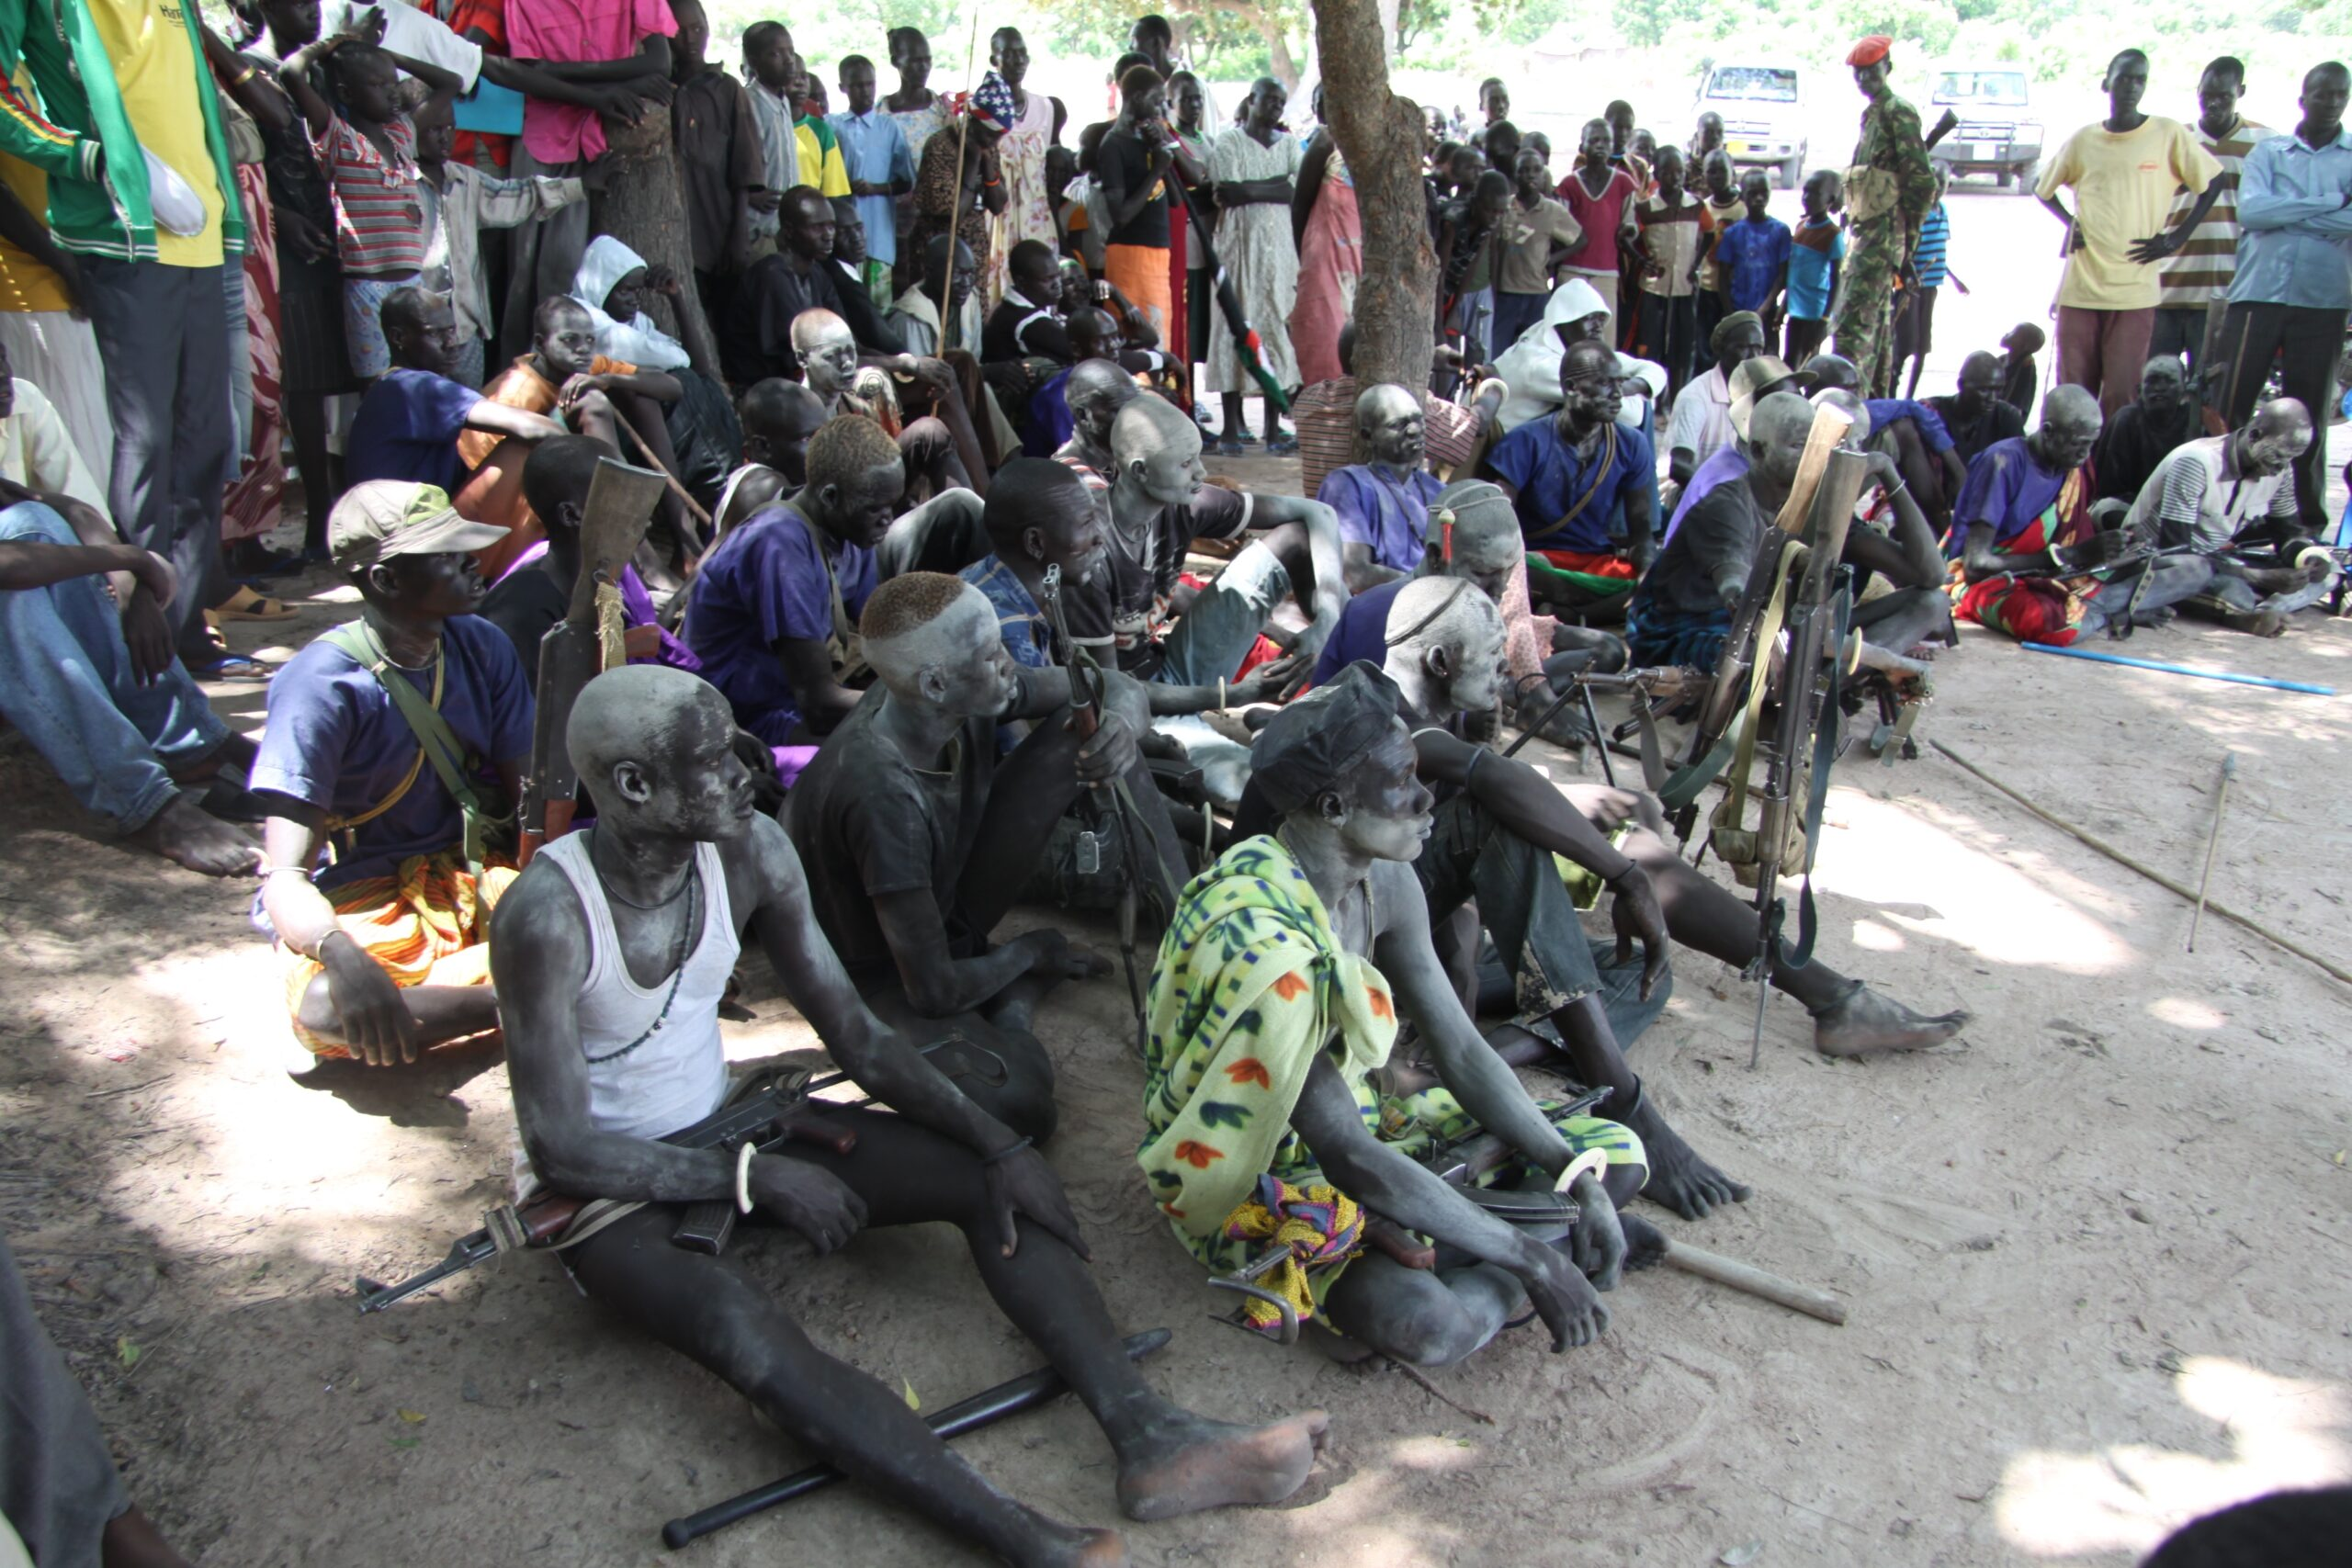 gelweng_youth_lining_up_in_jier_payam_of_rumbek_central_to_handover_their_guns_to_spla_forces_photo_taken_on_8.09.2011_.jpg